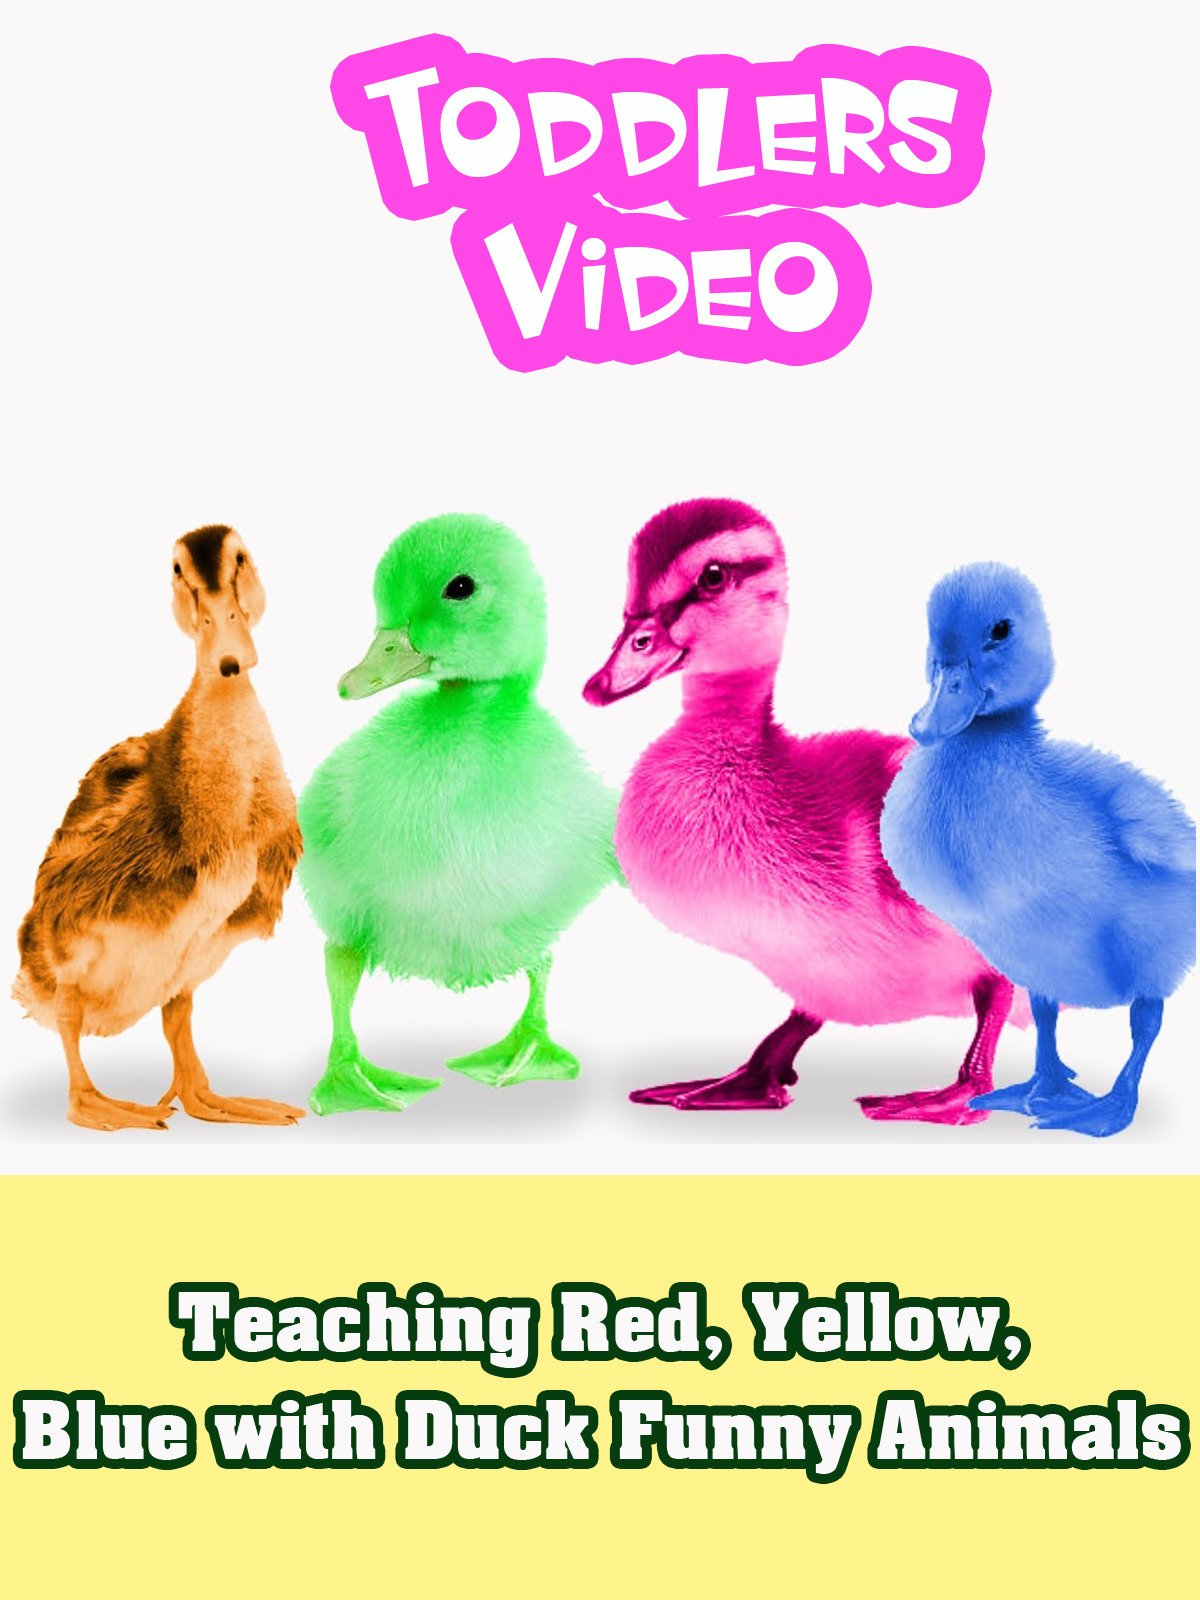 Teaching Red, Yellow, Blue with Duck Funny Animals